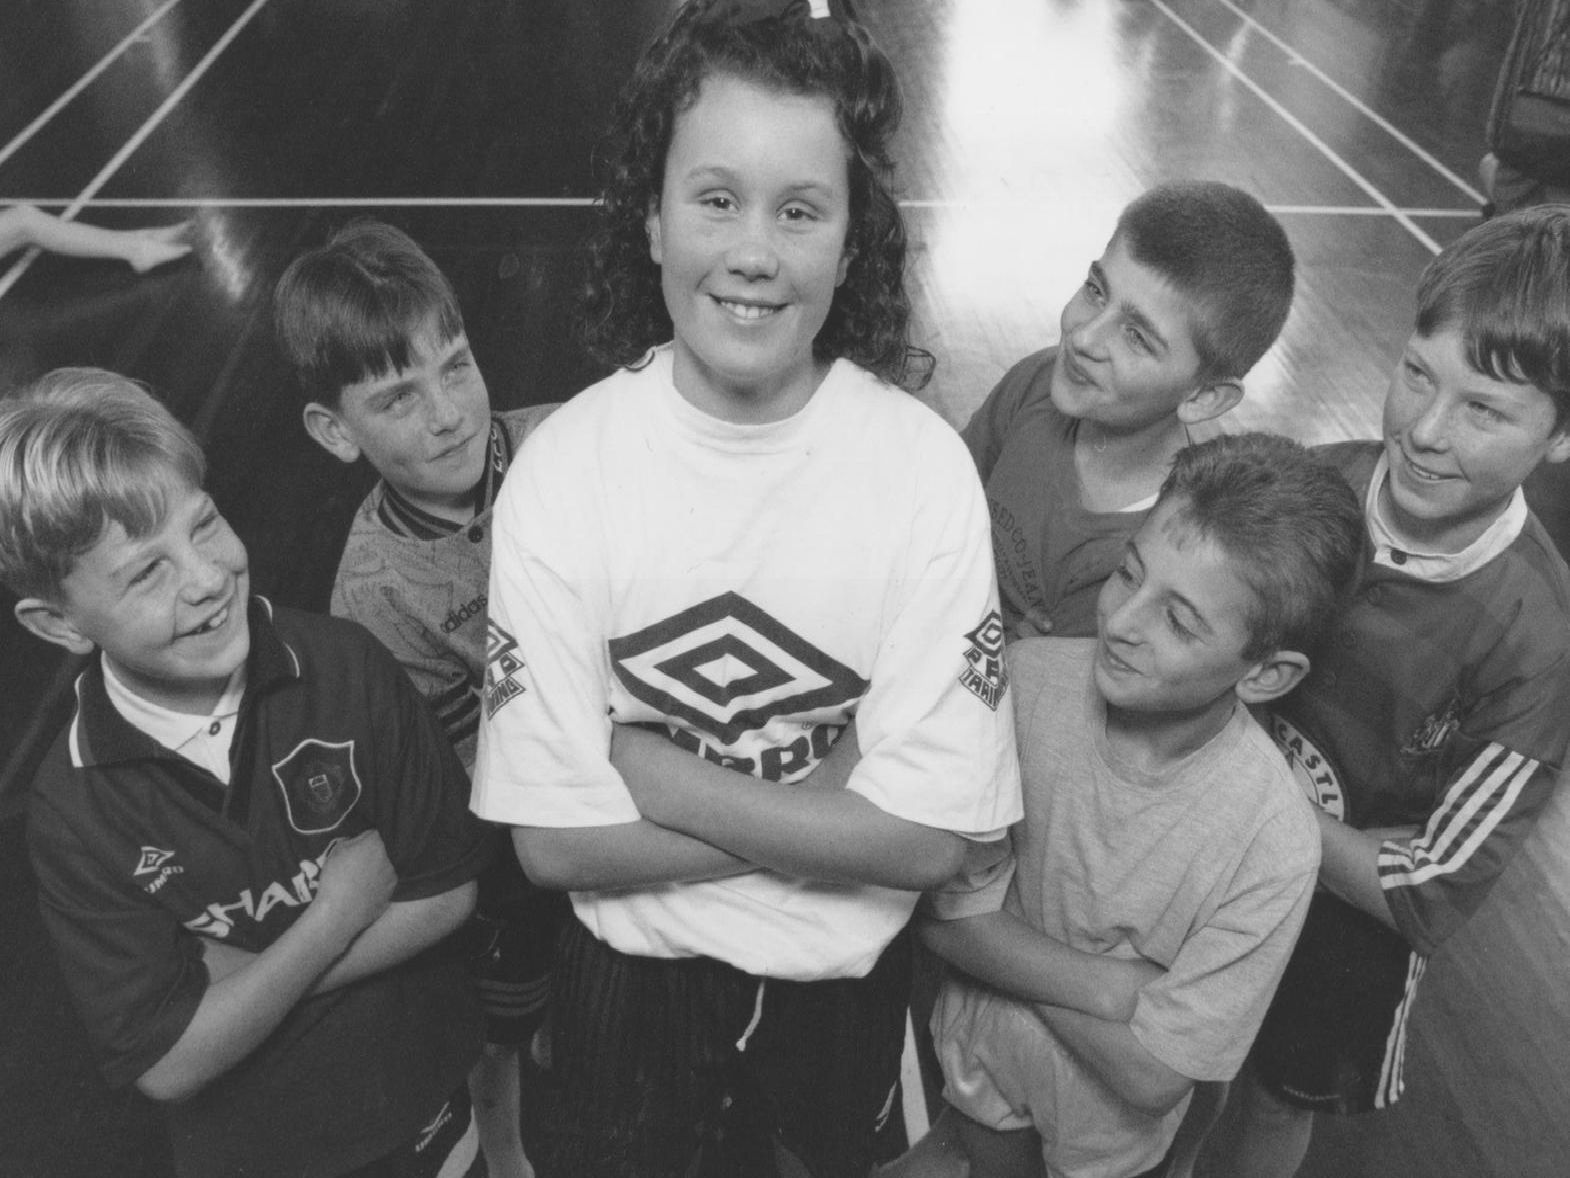 Eleven year old Wheatcroft School pupil, Natalie Wilford, had become the captain of the school's five-a-side football team in February 1996. Natalie is pictured with her team, from left, Daniel Morris, Mark Hindhough, Wissam Orfali, James Gorman, and Thomas Scales.